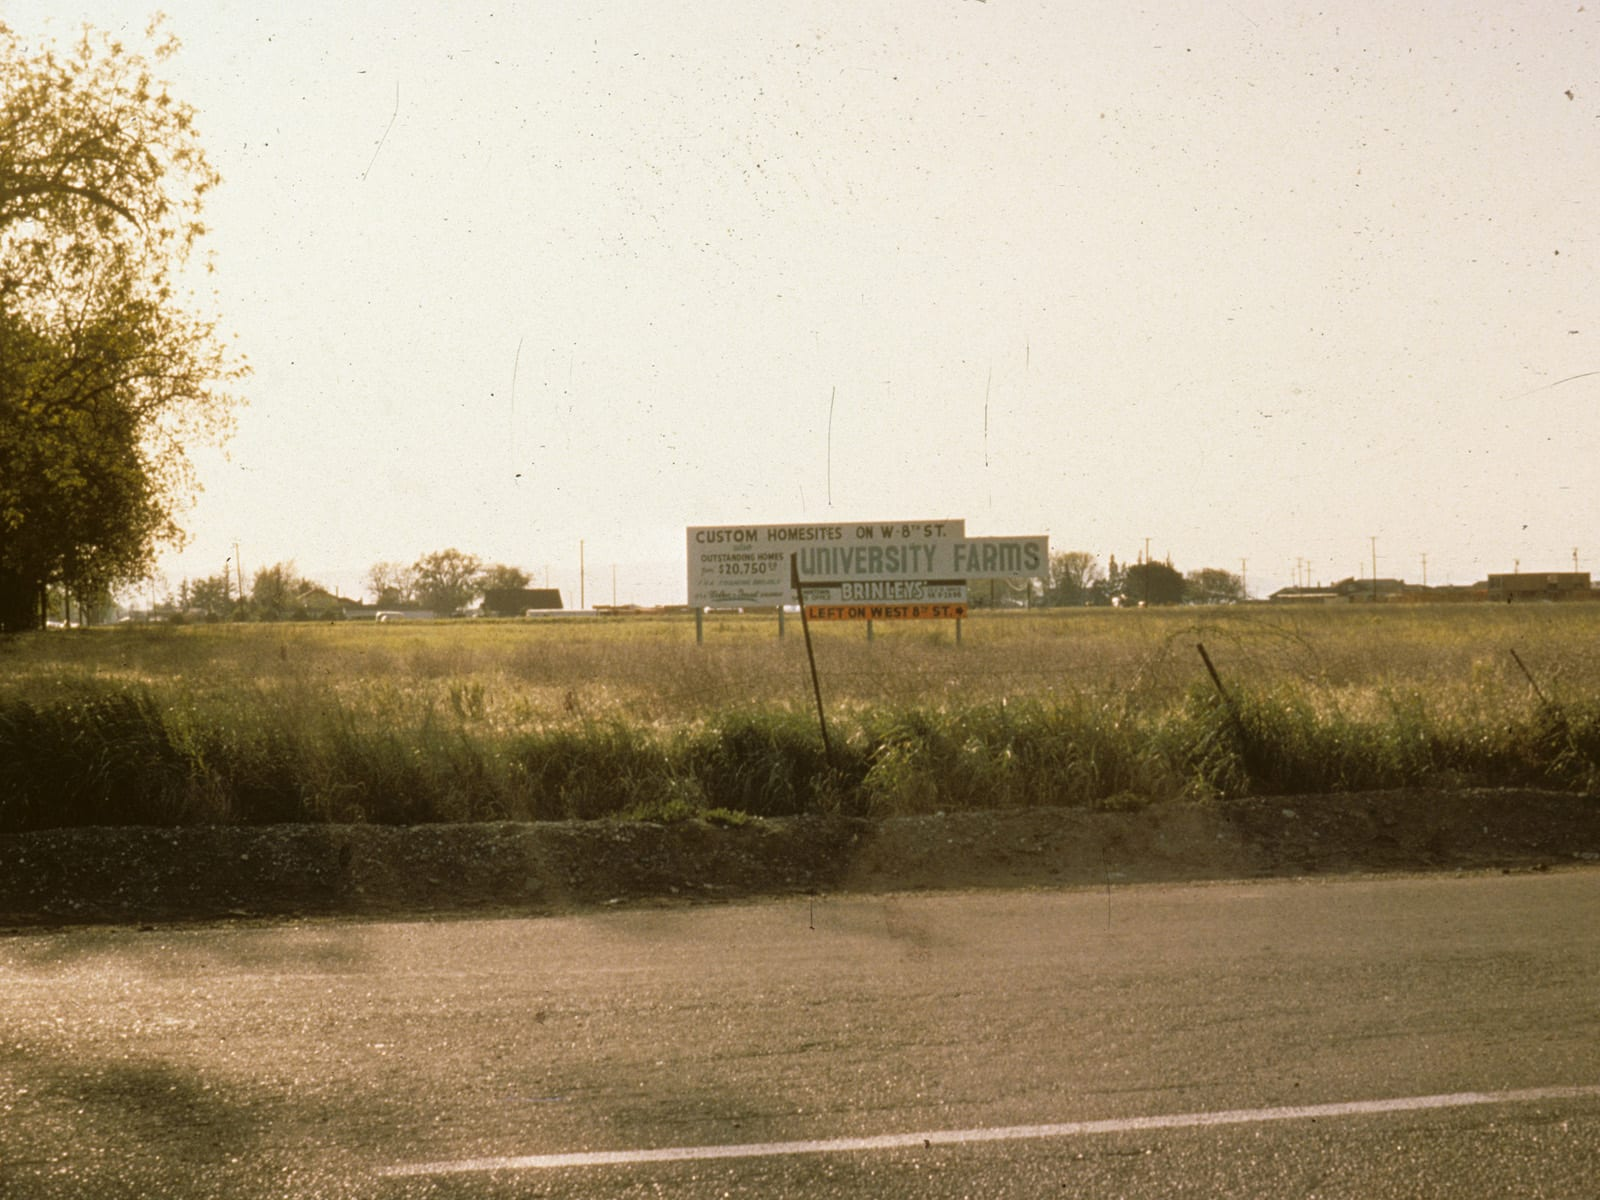 The corner of Russell Boulevard and Anderson Road, circa 1960-1965